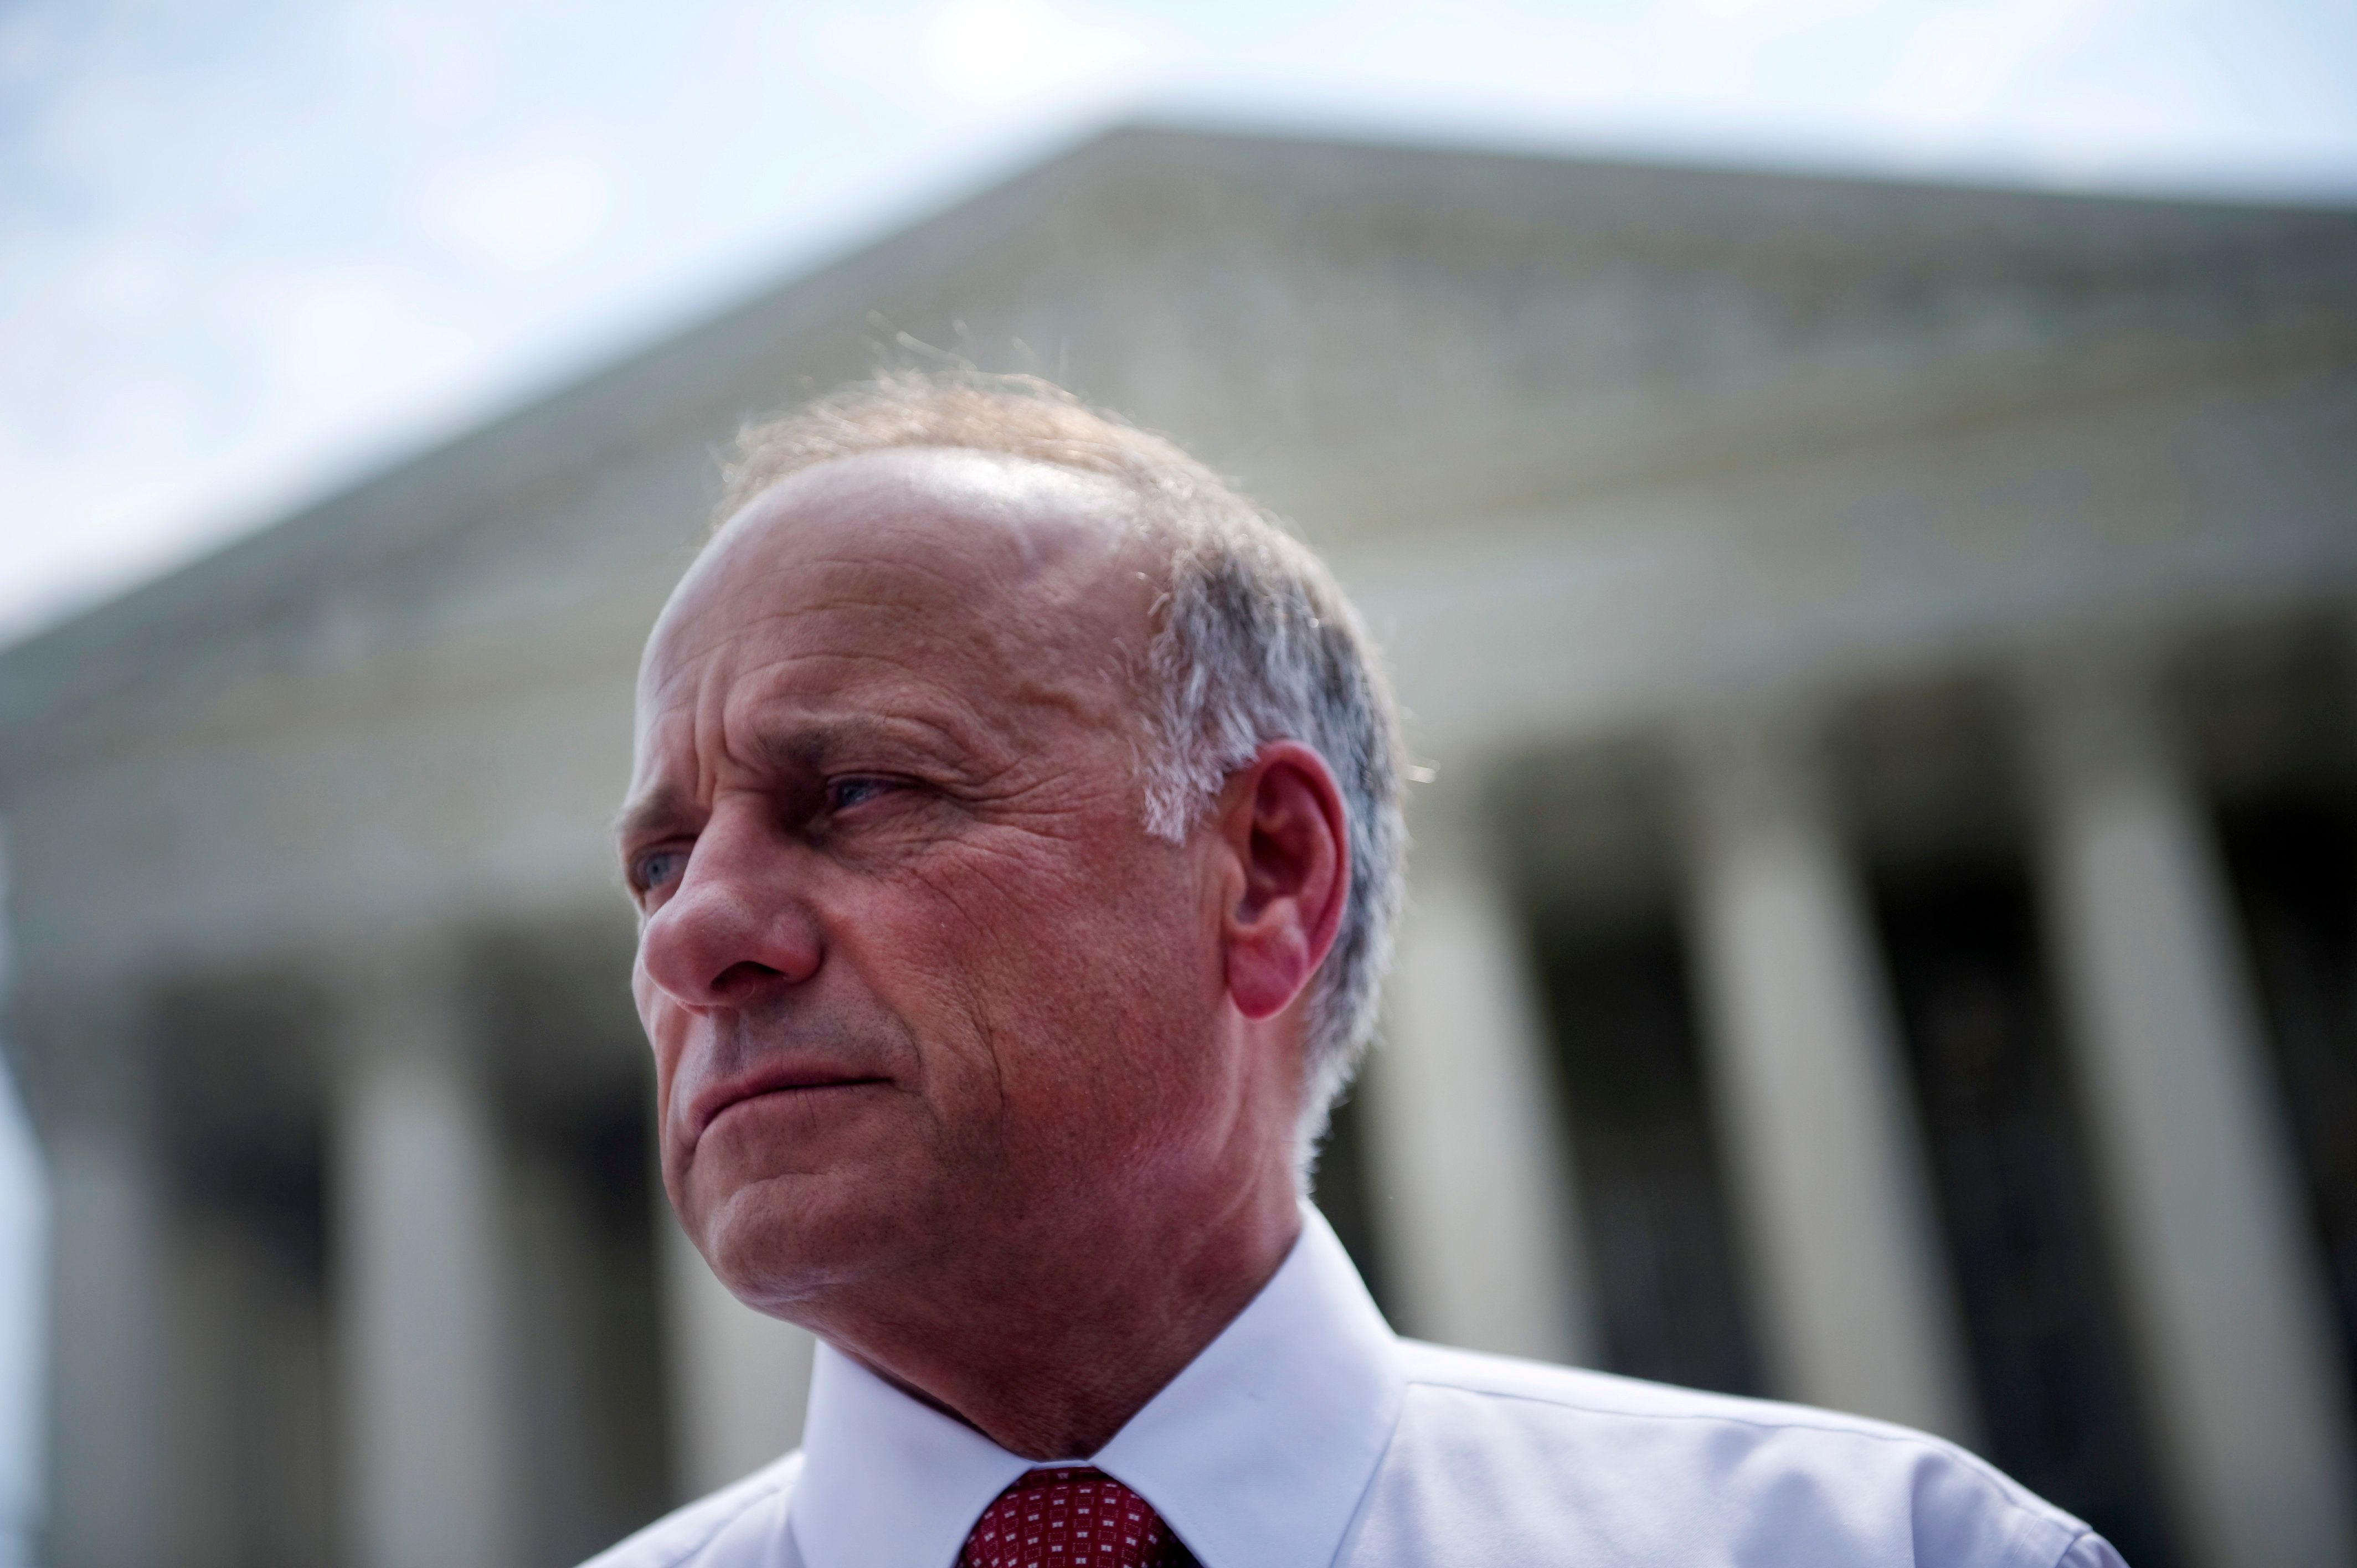 Rep. Steve King (R-Iowa)supports increasing the number of deportations.